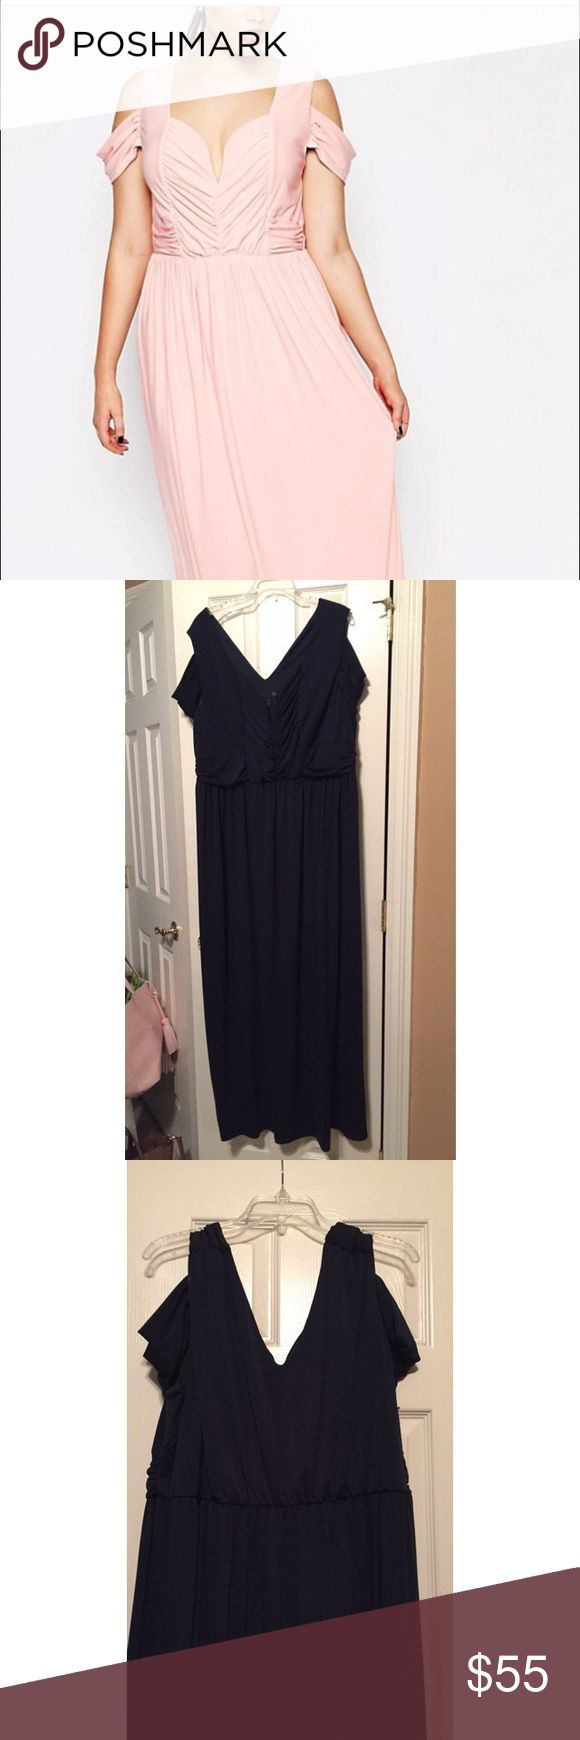 ASOS CURVE Maxi Dress This dress is a beautiful navy color. Size 22. Worn only once for a formal event. The only flaw is there a few thread pulls on the back of the dress. Perfect for a Prom, Ball, or any other glamorous event! ASOS Curve Dresses Maxi